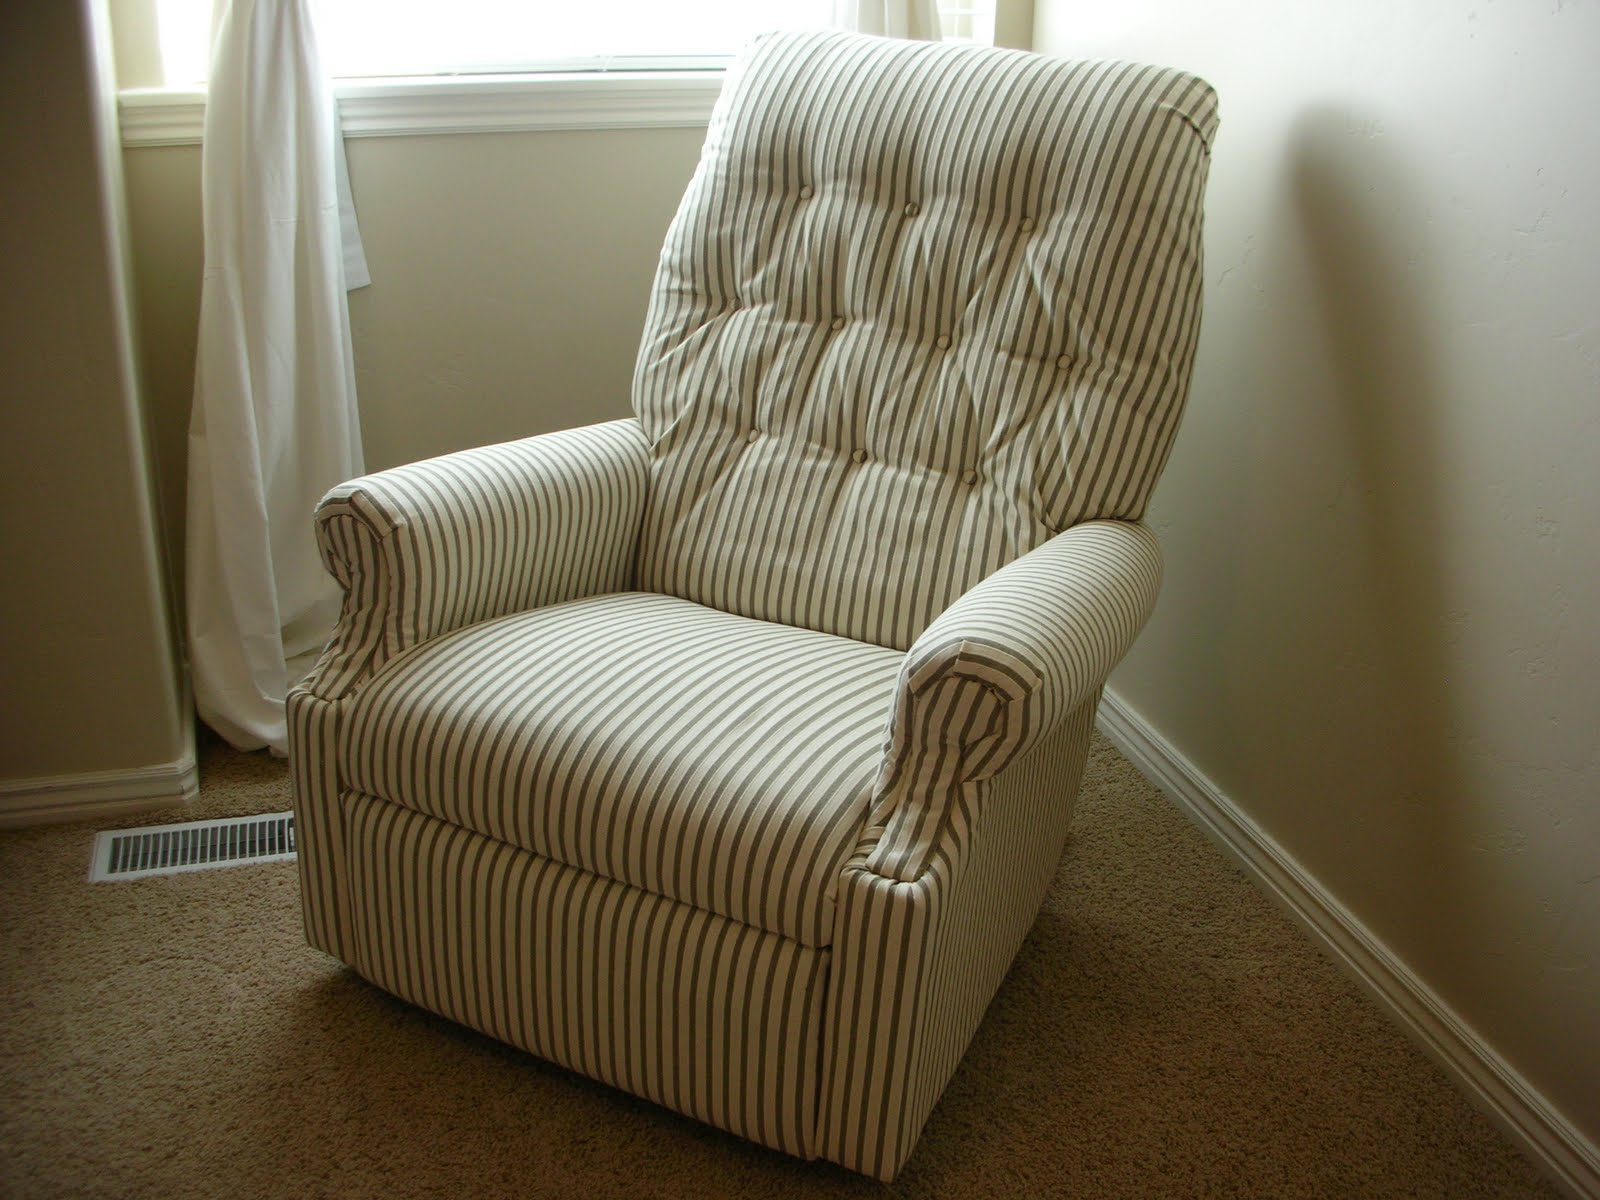 Lazy Boy Chair Covers Nz Yellow And Grey Cushions Do It Yourself Divas Diy Reupholster An Old La Z Recliner